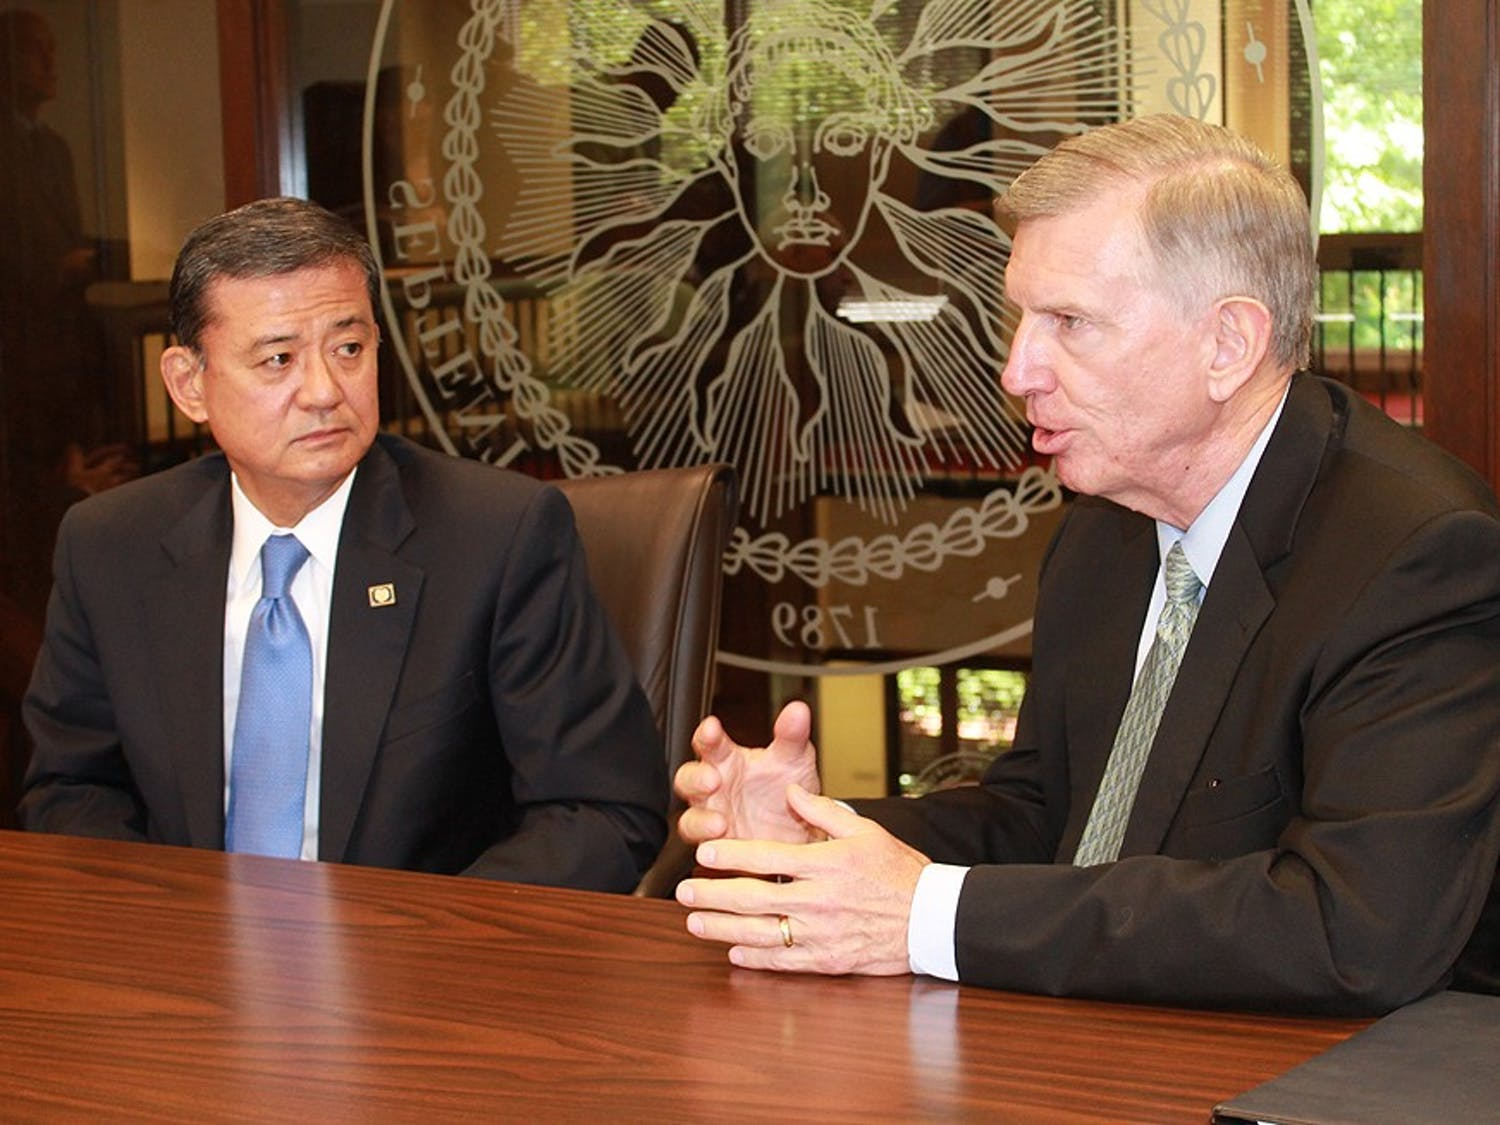 U.S. Secretary of Foreign Affairs Eric Shinseki (left) and UNC system president Tom Ross spoke Tuesday on ways to improve access to higher education in North Carolina for military veterans.